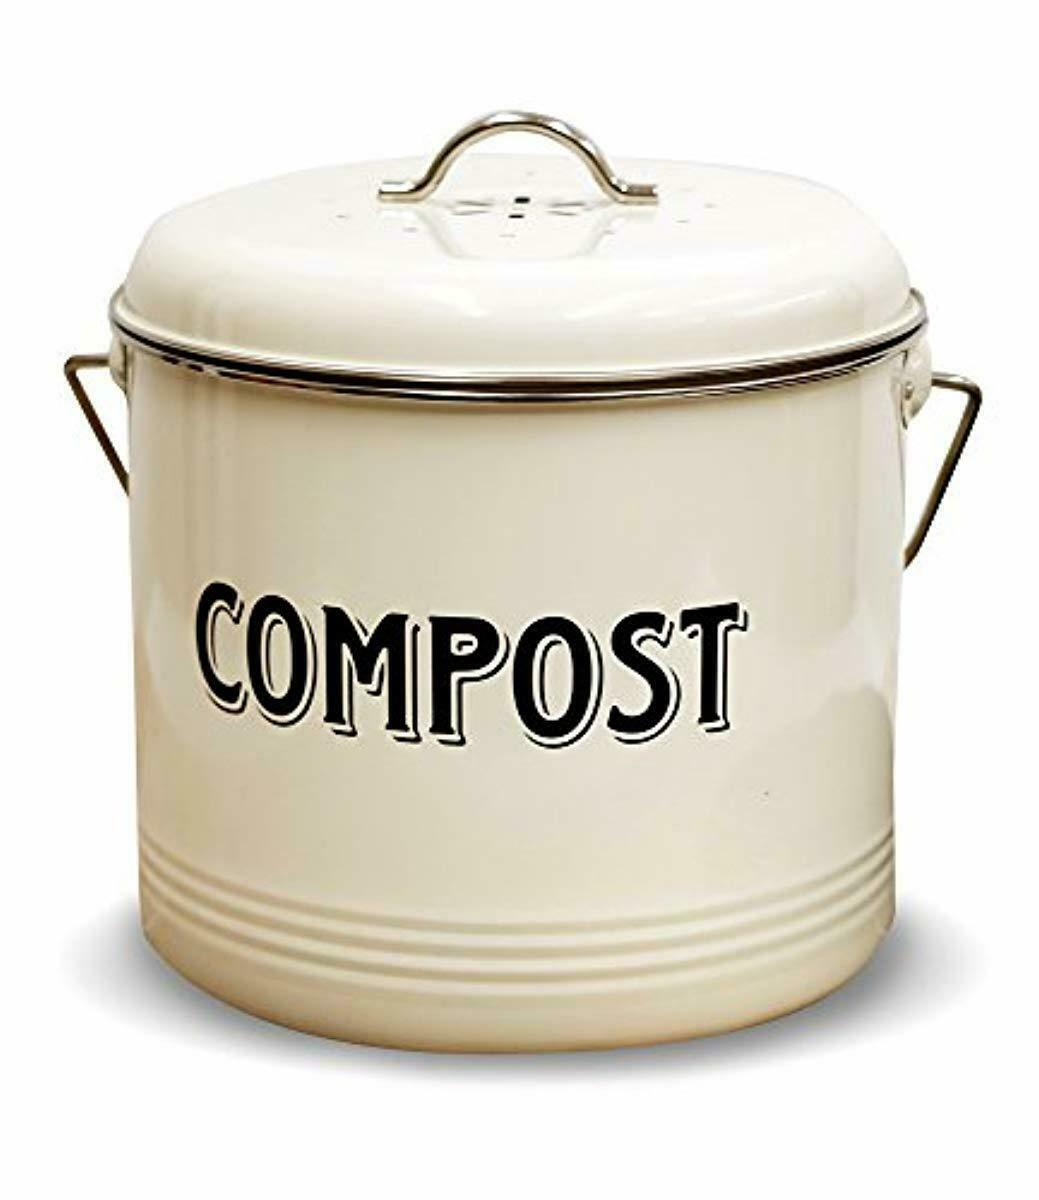 Details about Carbon Steel Compost Bin Recycling Kitchen Pail Trash Keeper  Container Bucket